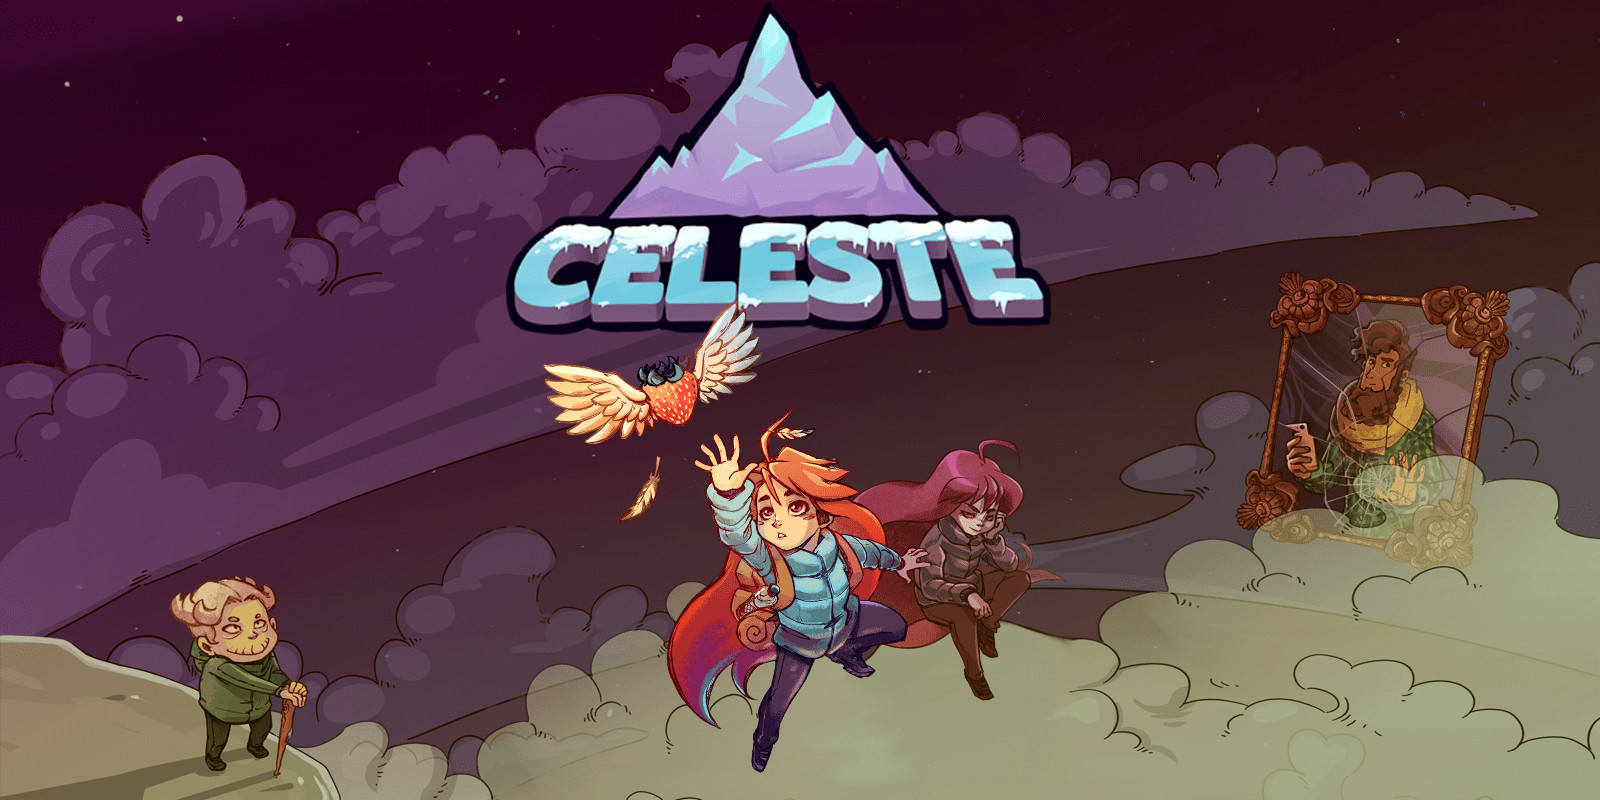 Today's Best Game Deals: Celeste $13, Dragon Ball Xenoverse 2 $15, more